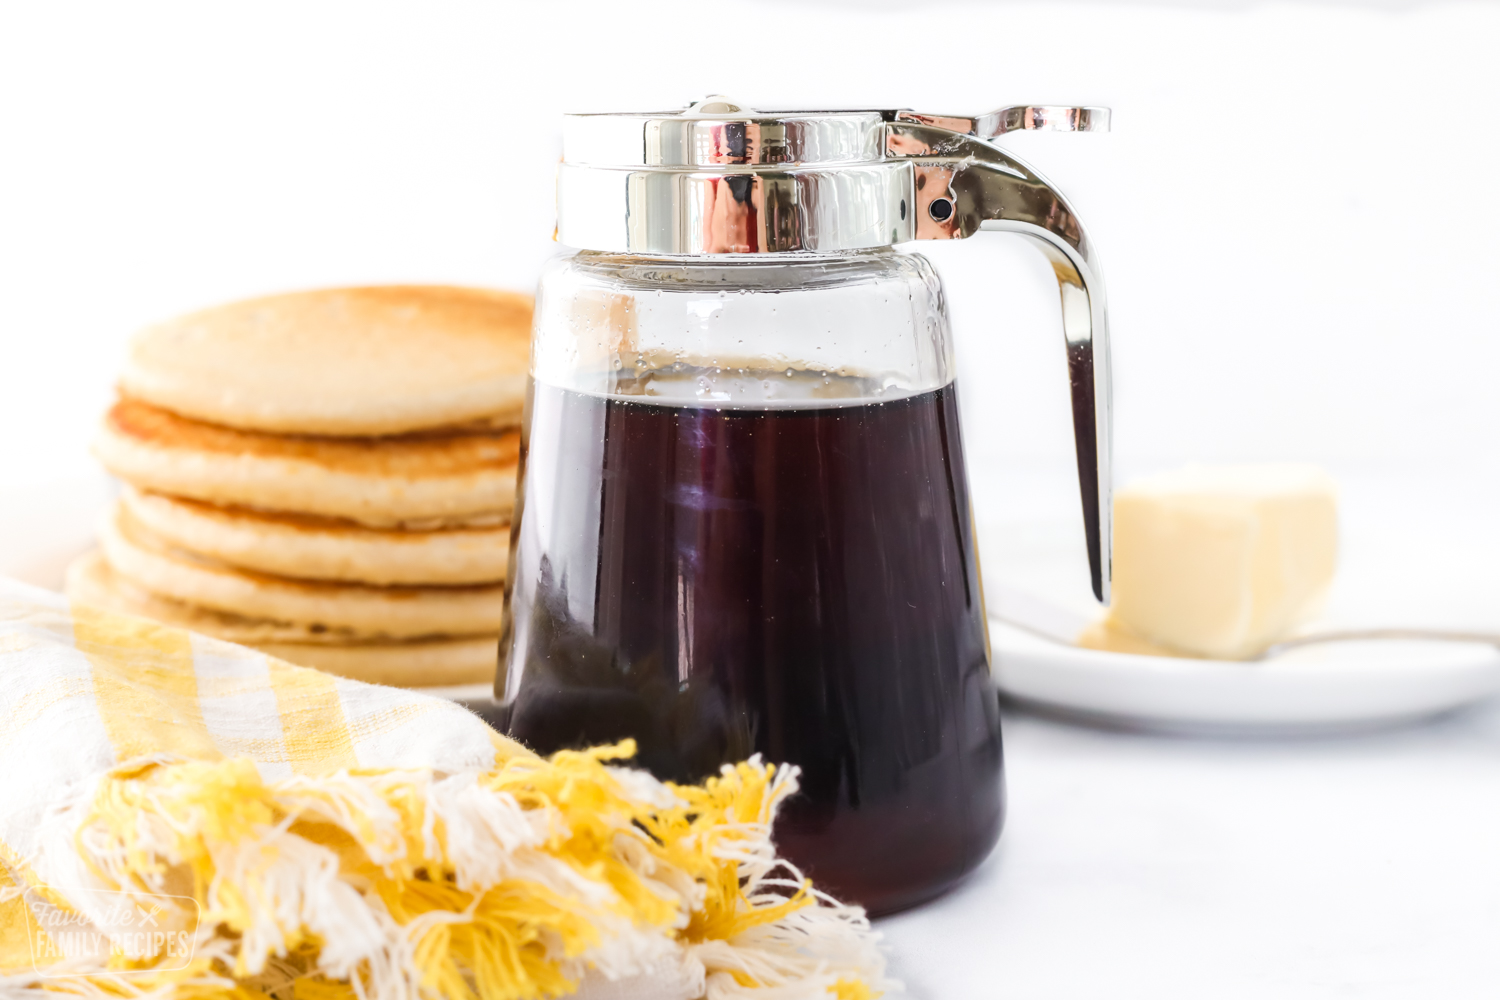 Homemade syrup in a jar with a lid and pour spout next to a stack of breakfast pancakes